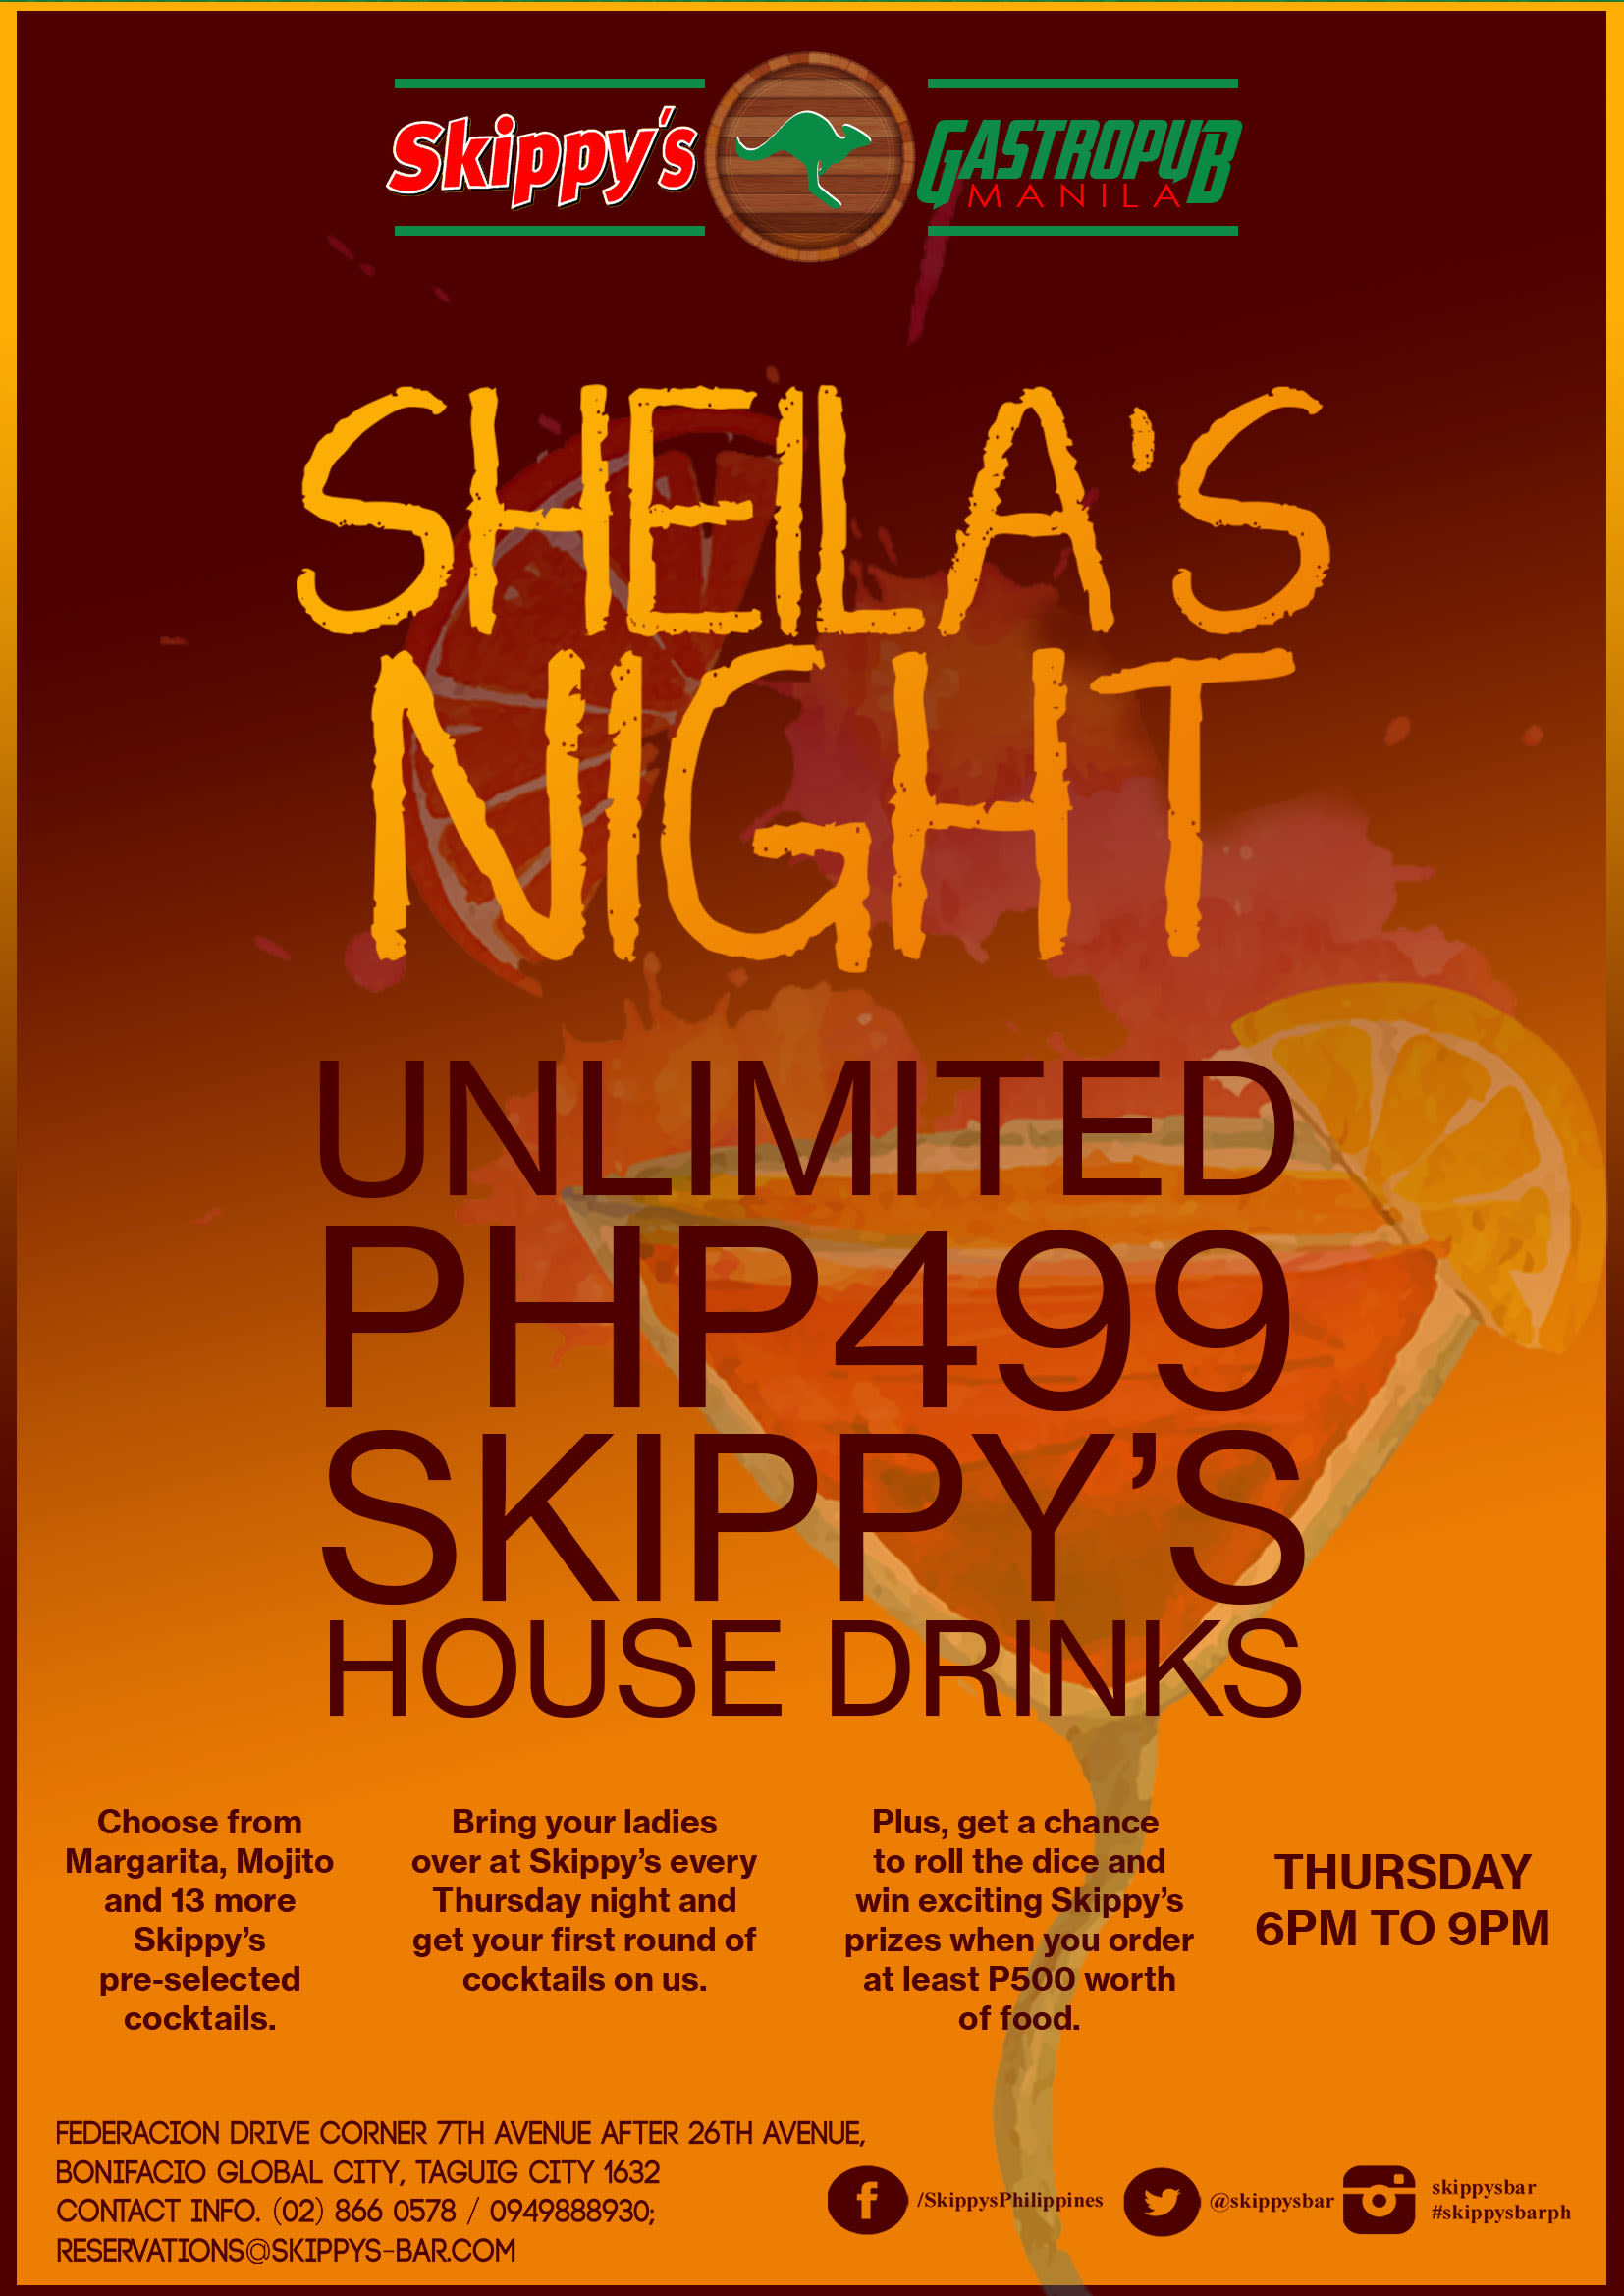 Sheila's Night